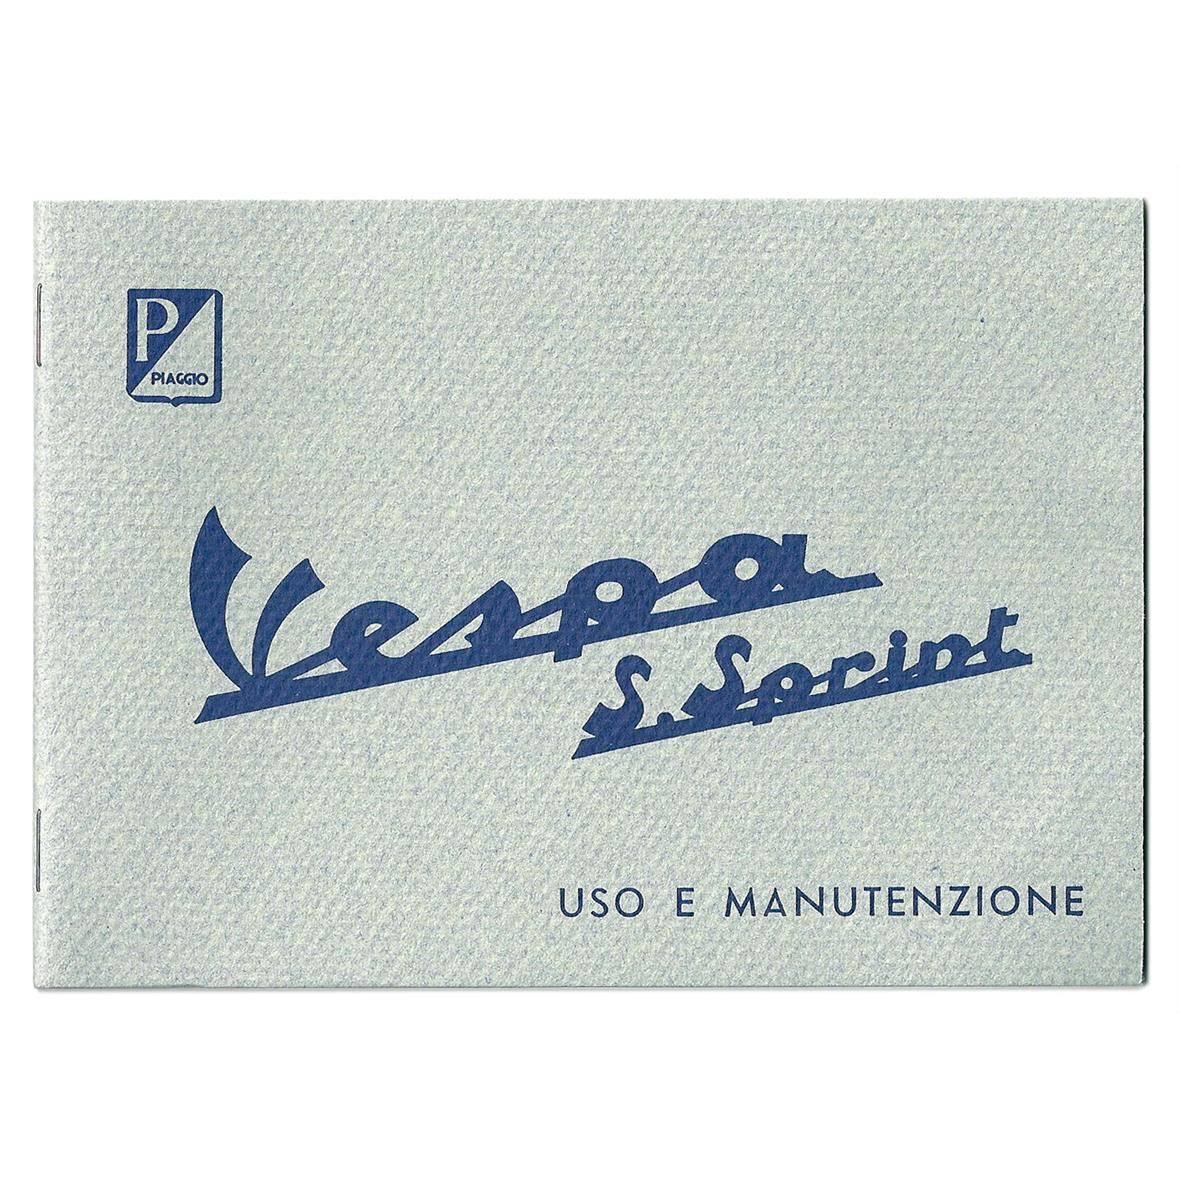 Product Image for 'Instruction Manual PIAGGIO Vespa SS90Title'